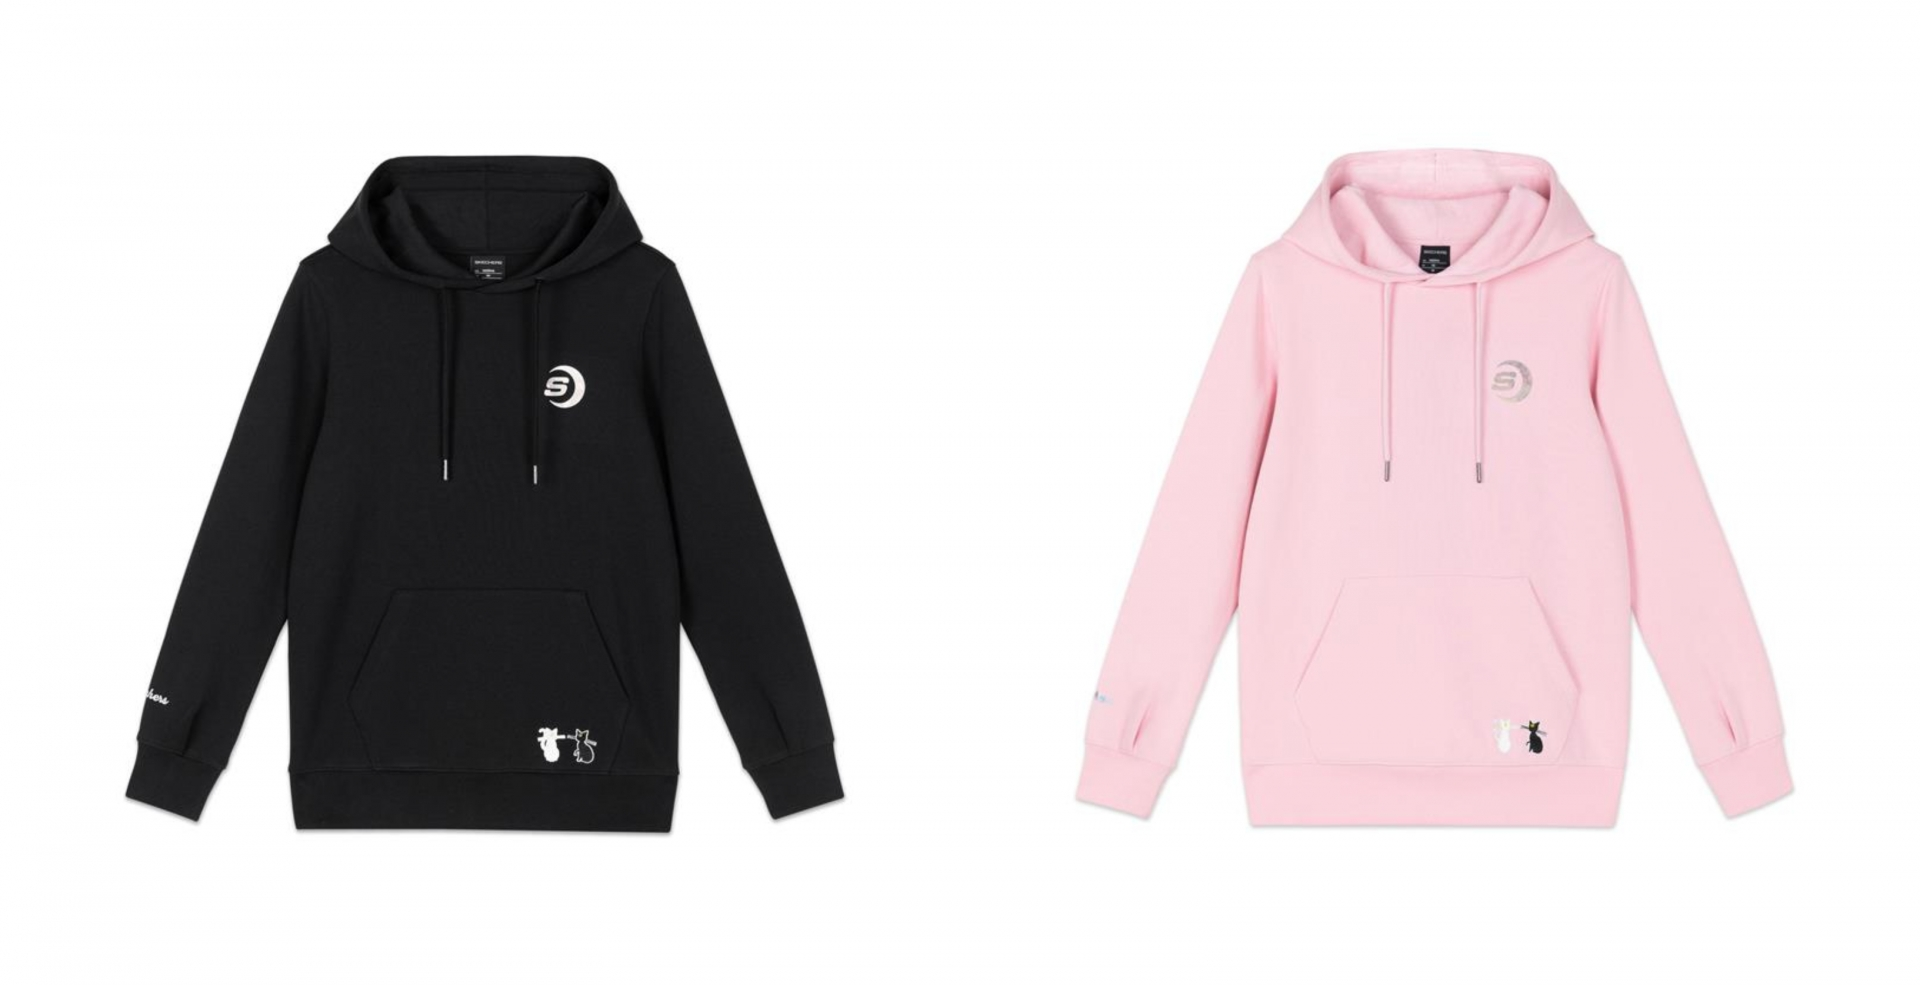 Skechers x Sailor Moon Hoodies